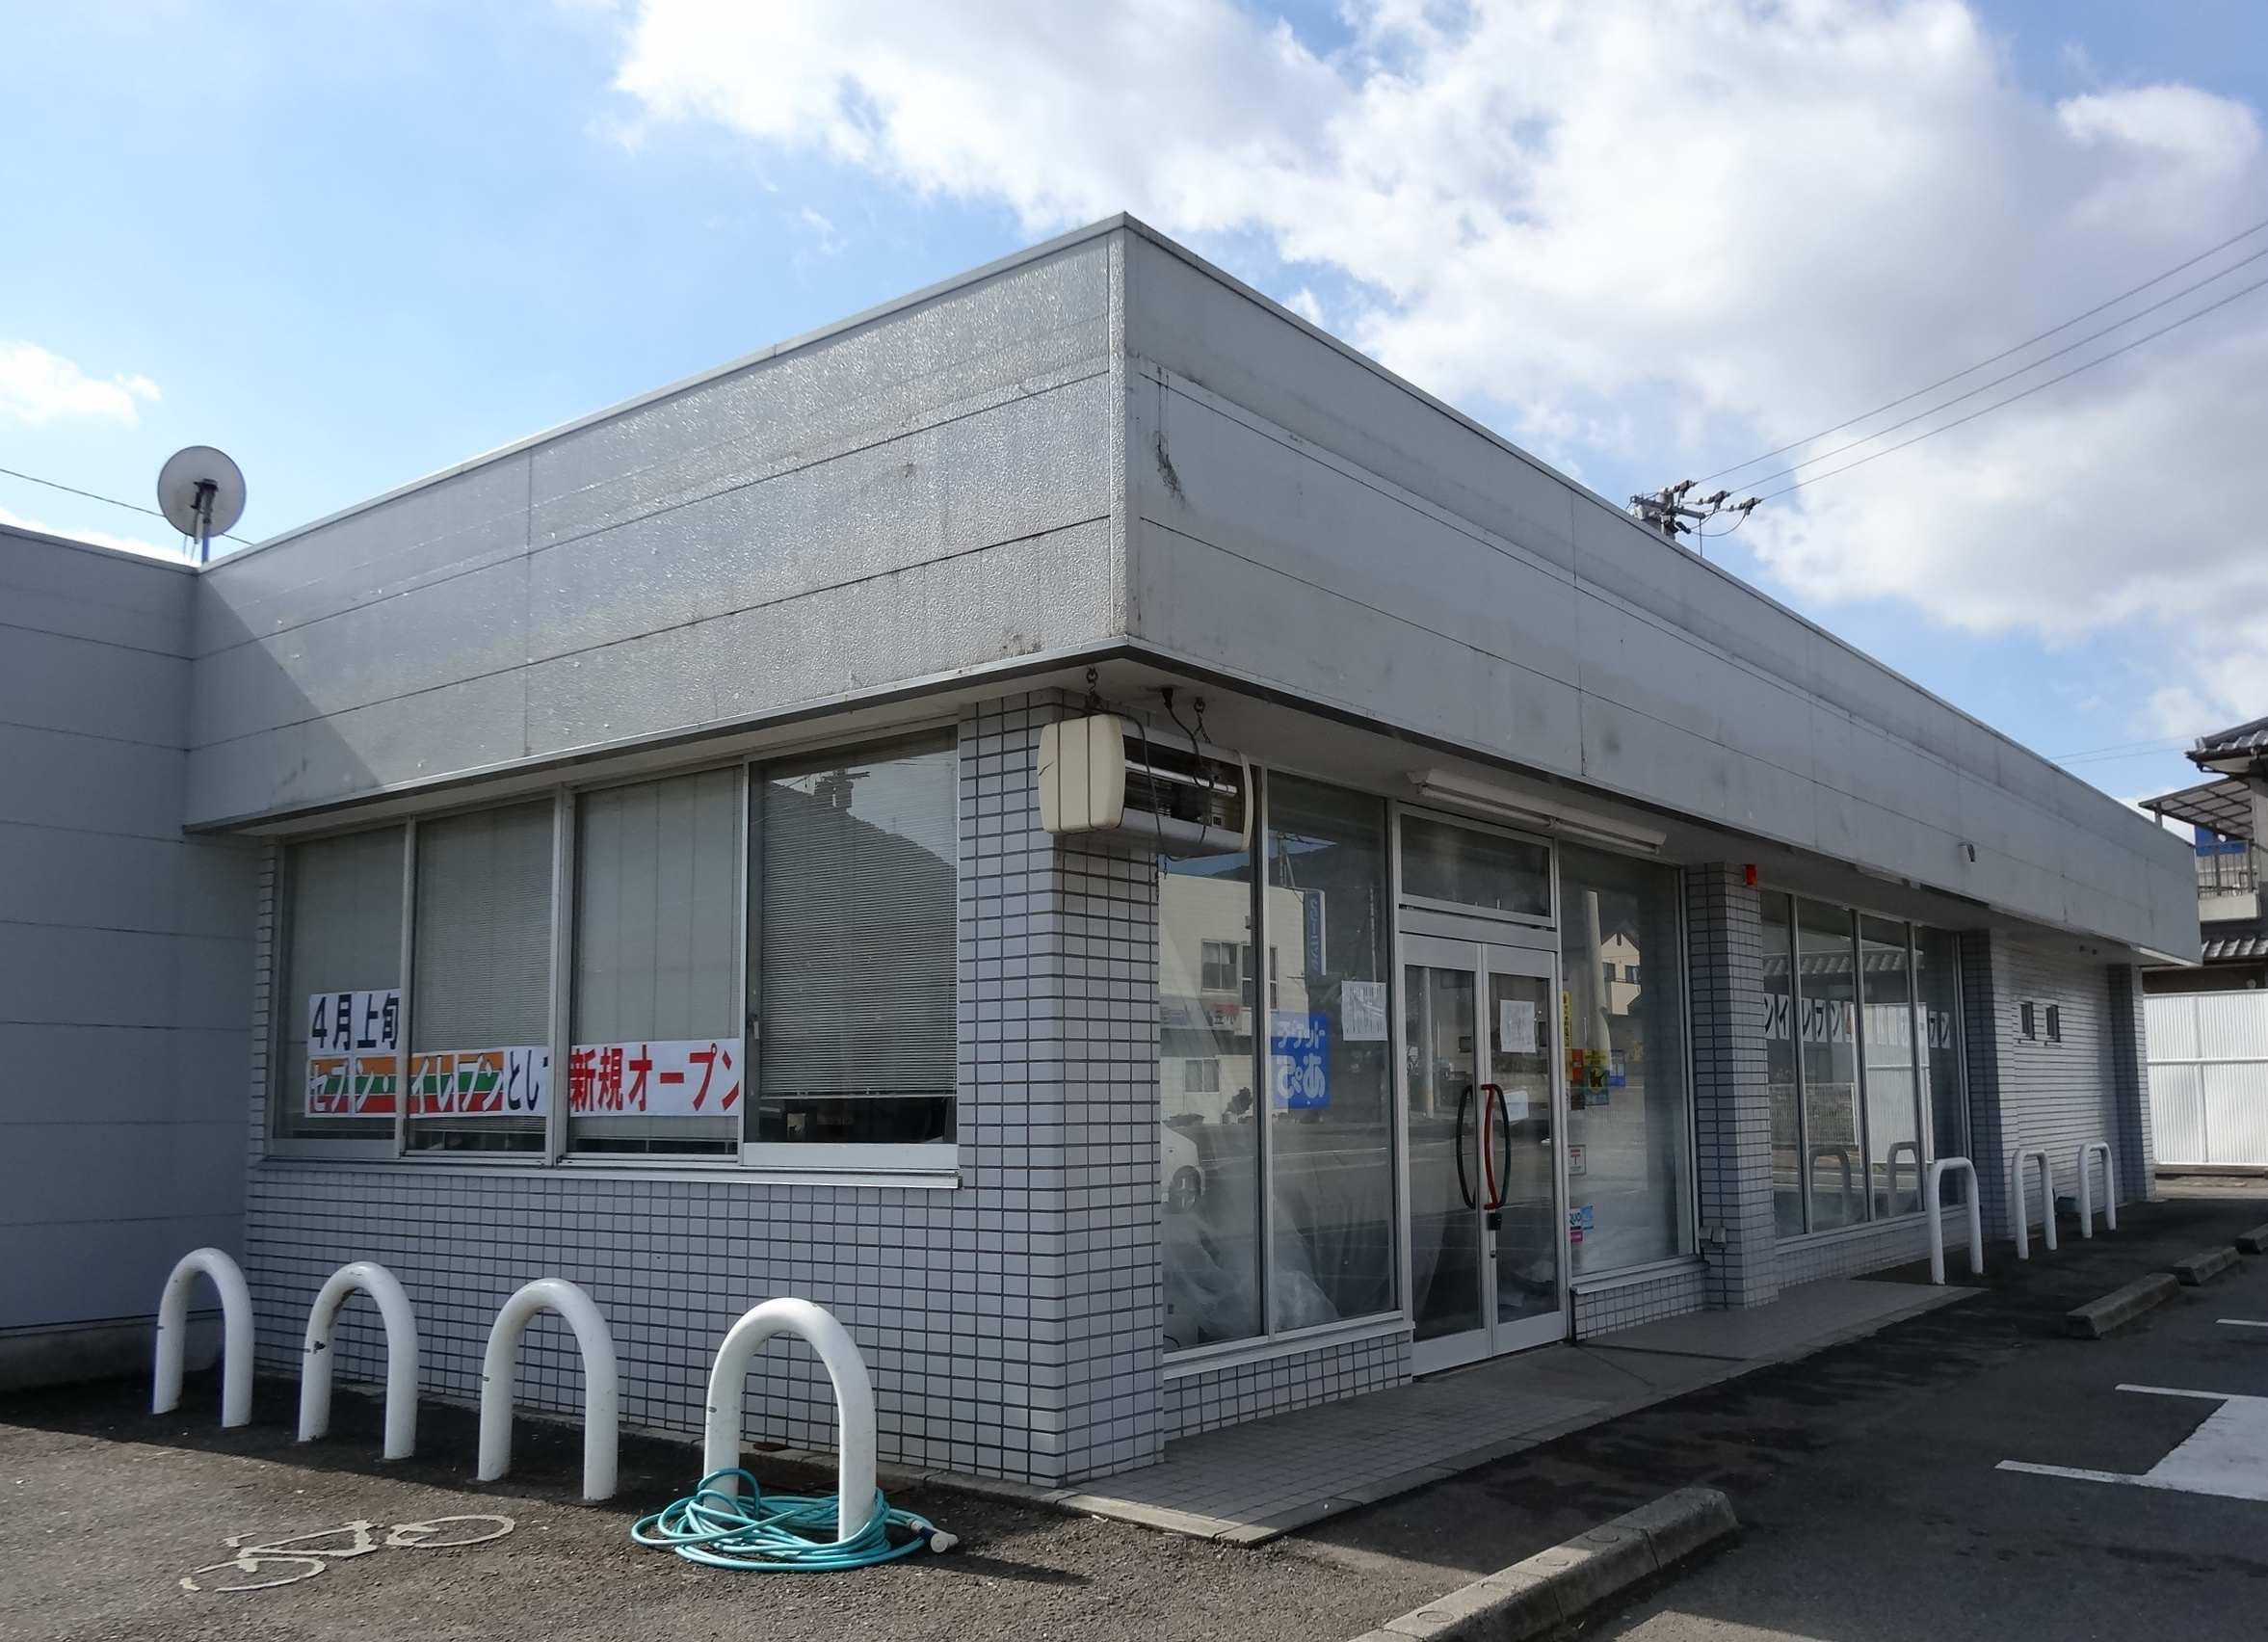 Tokushima Japan  city pictures gallery : Sunkus to 7 Eleven in Tokushima Japan Wikimedia Commons